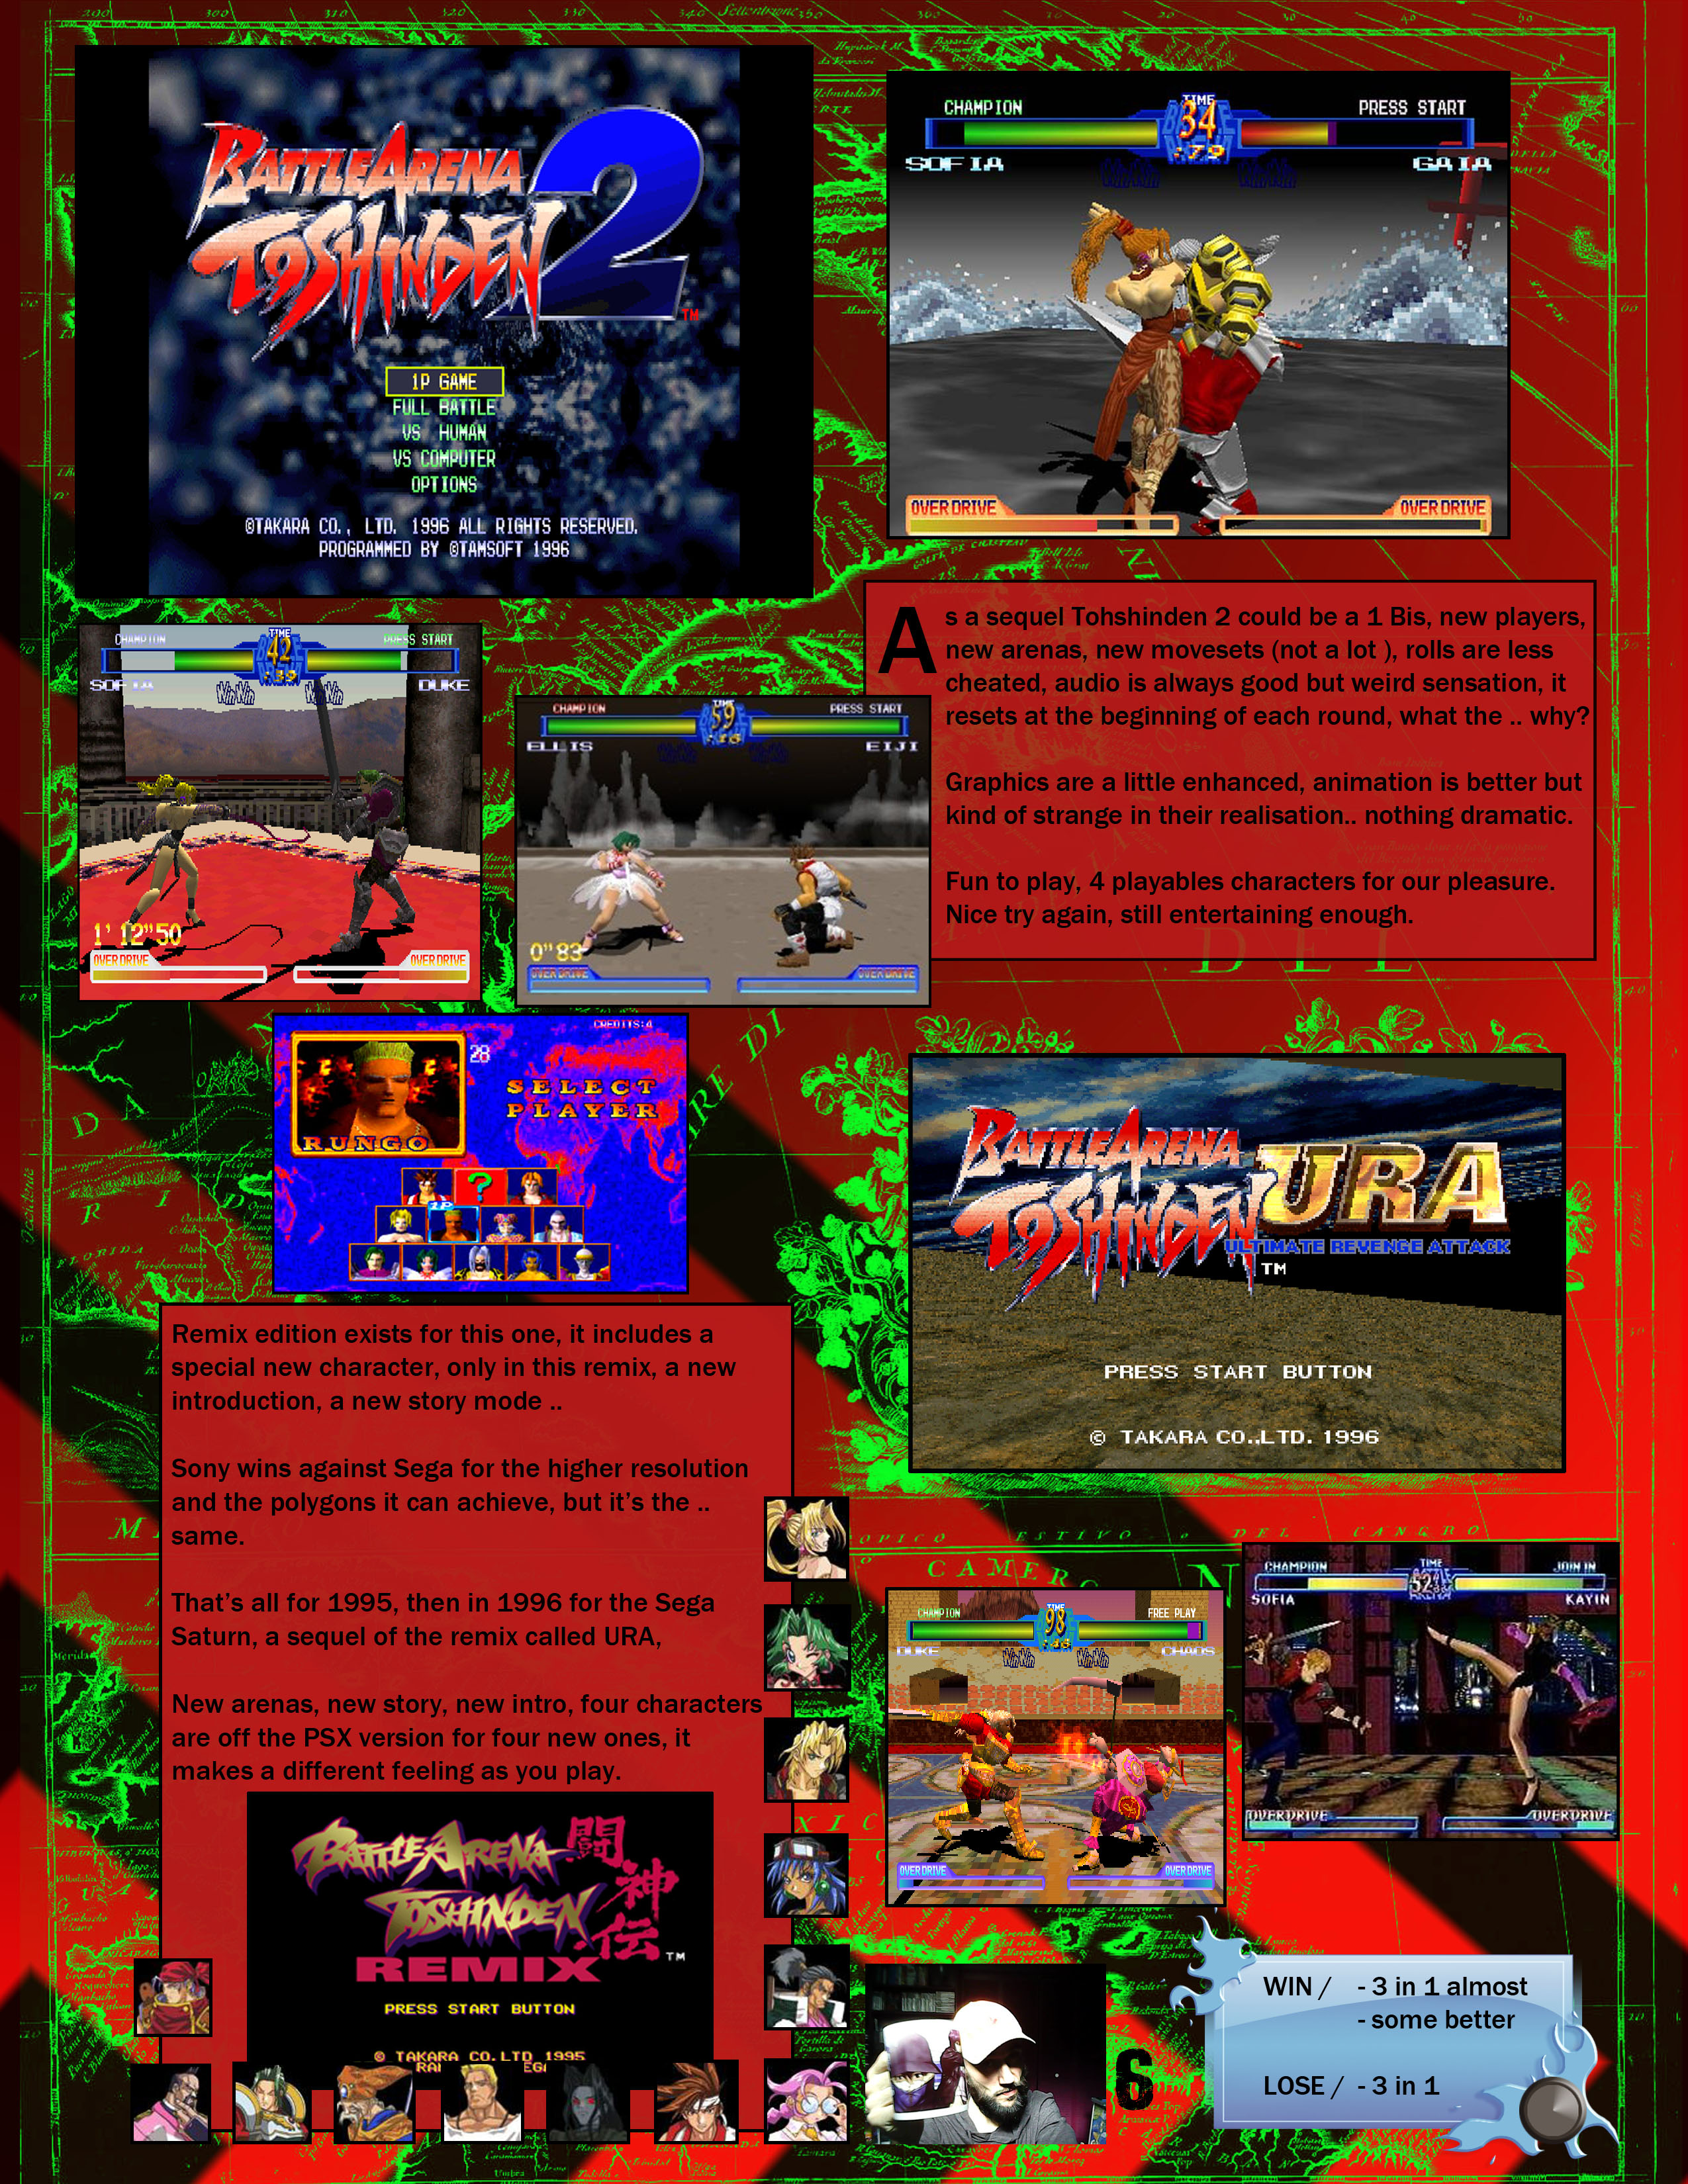 Battle Arena Toshinden 2 Ura Versus The Holy Book Of